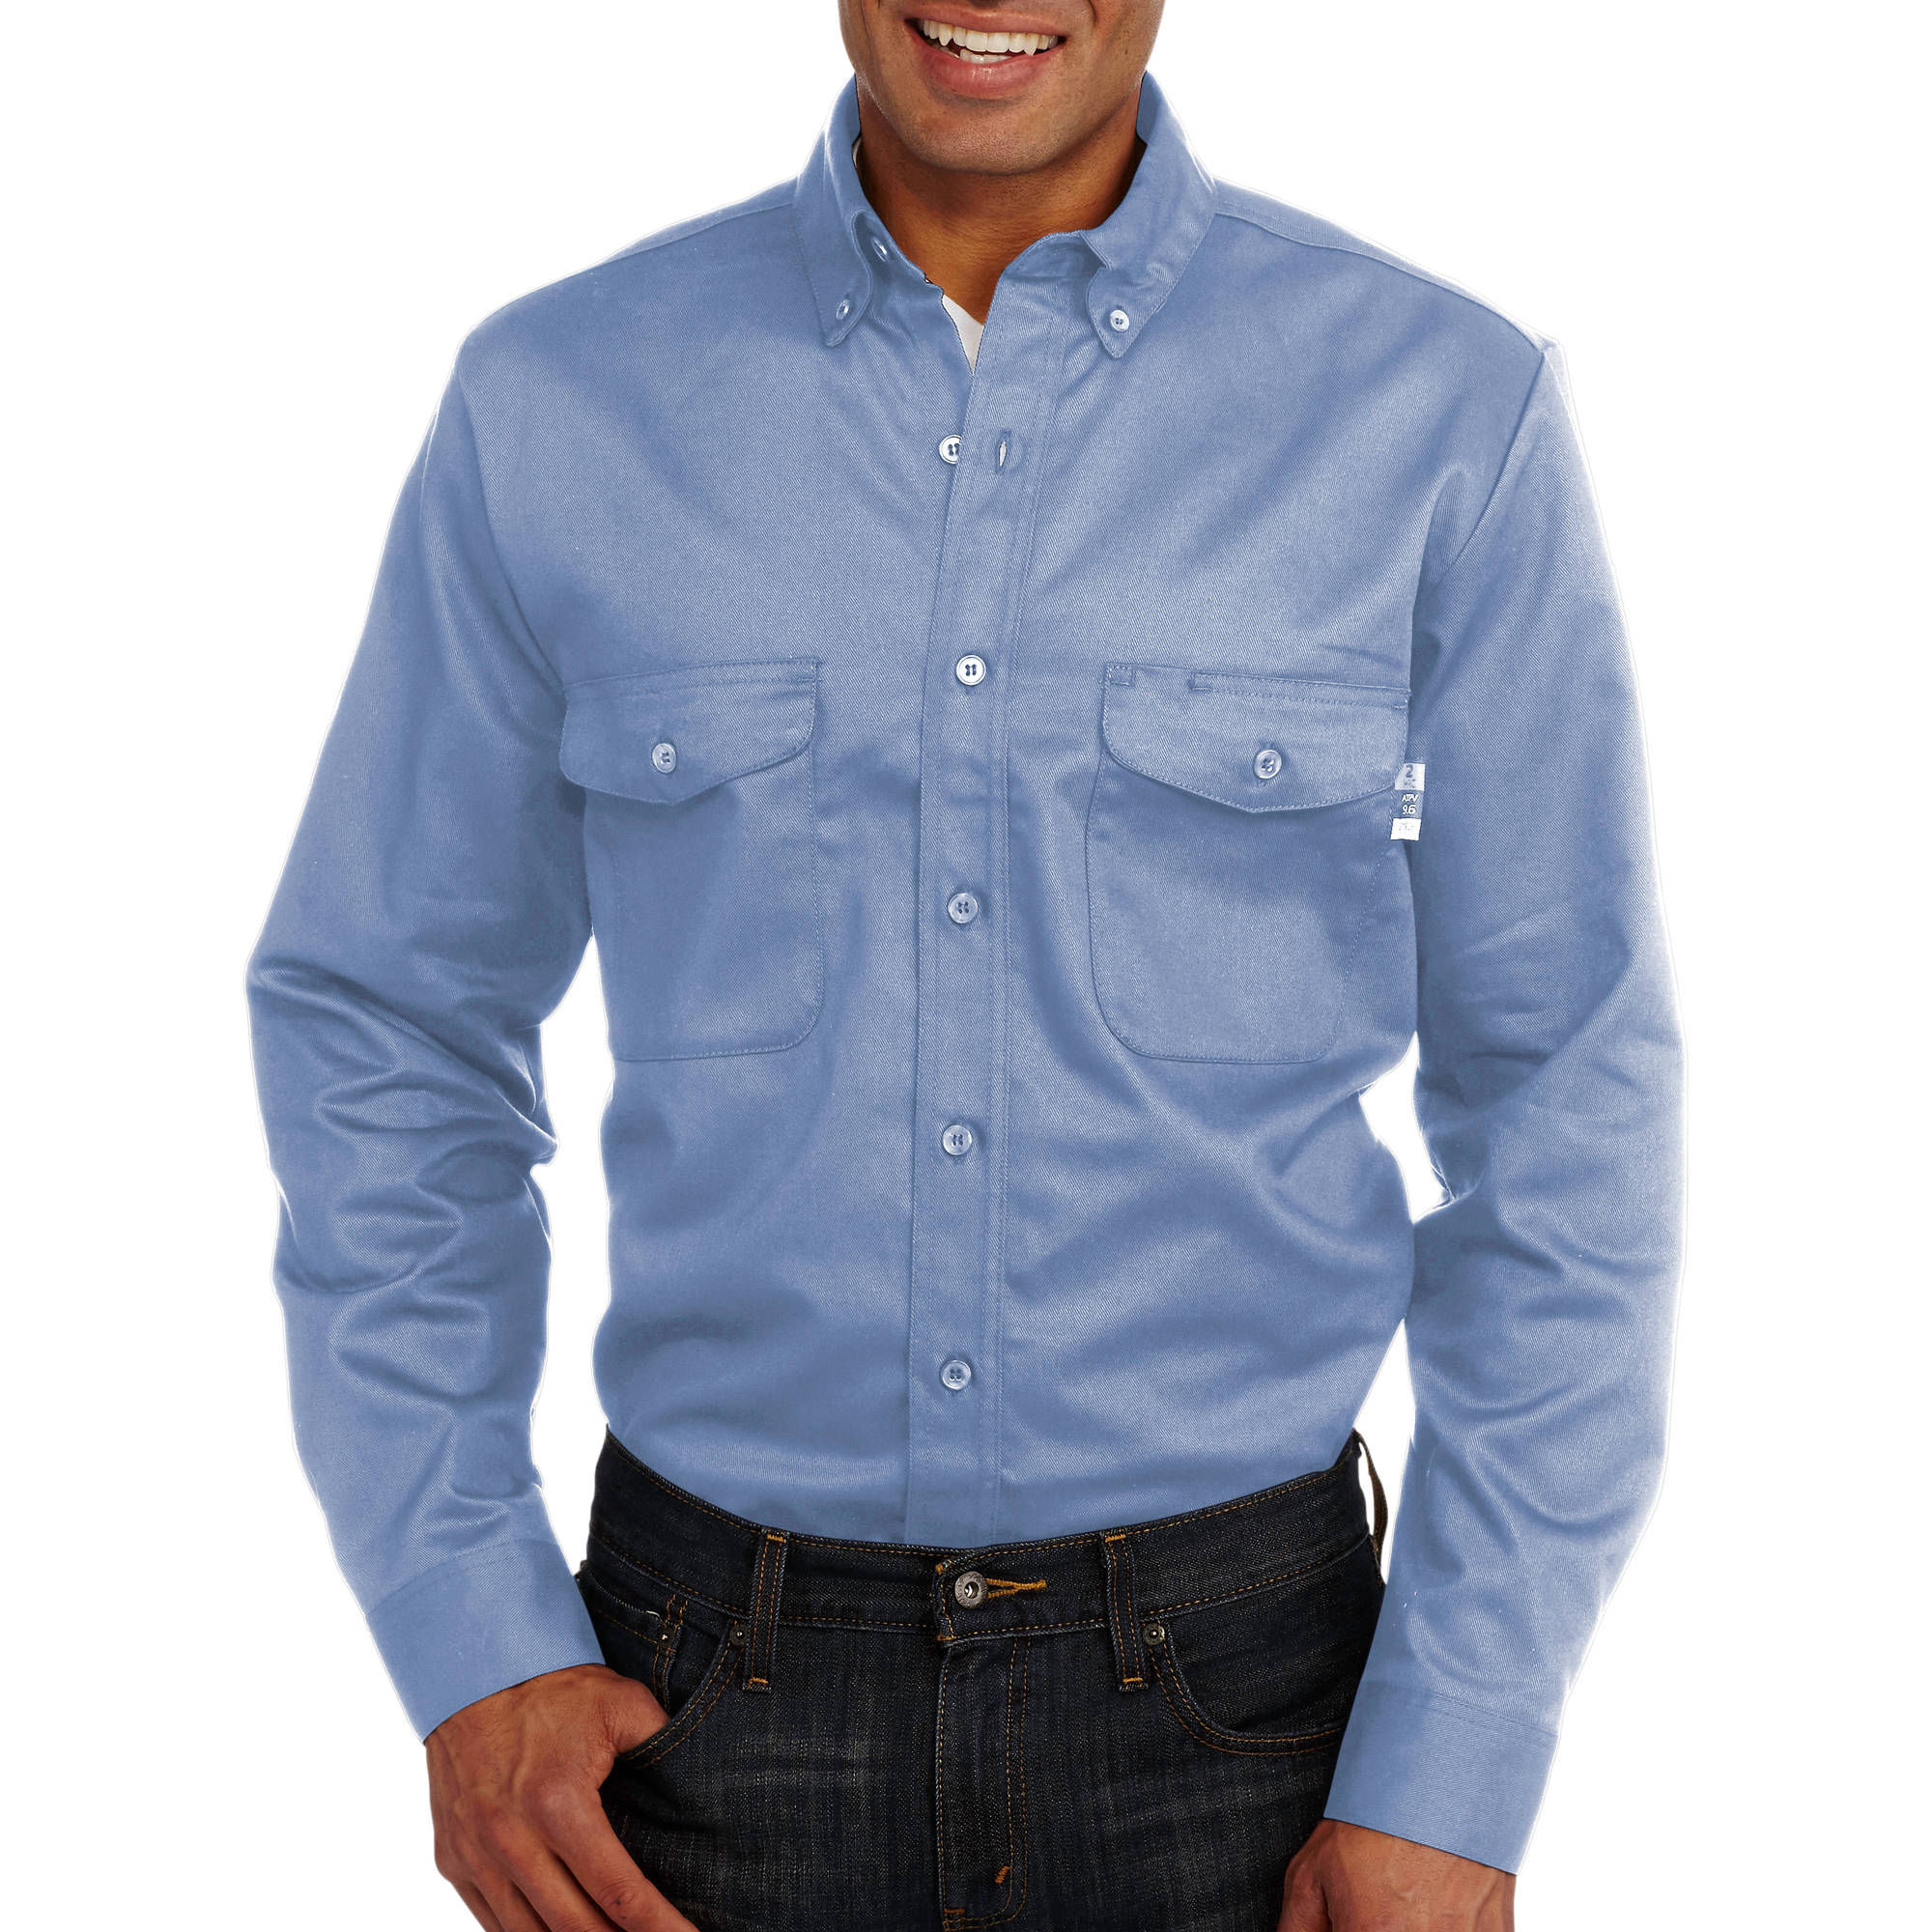 Walls FR Big Men's Flame Resistant Woven Chambray Shirt, HRC Level 2